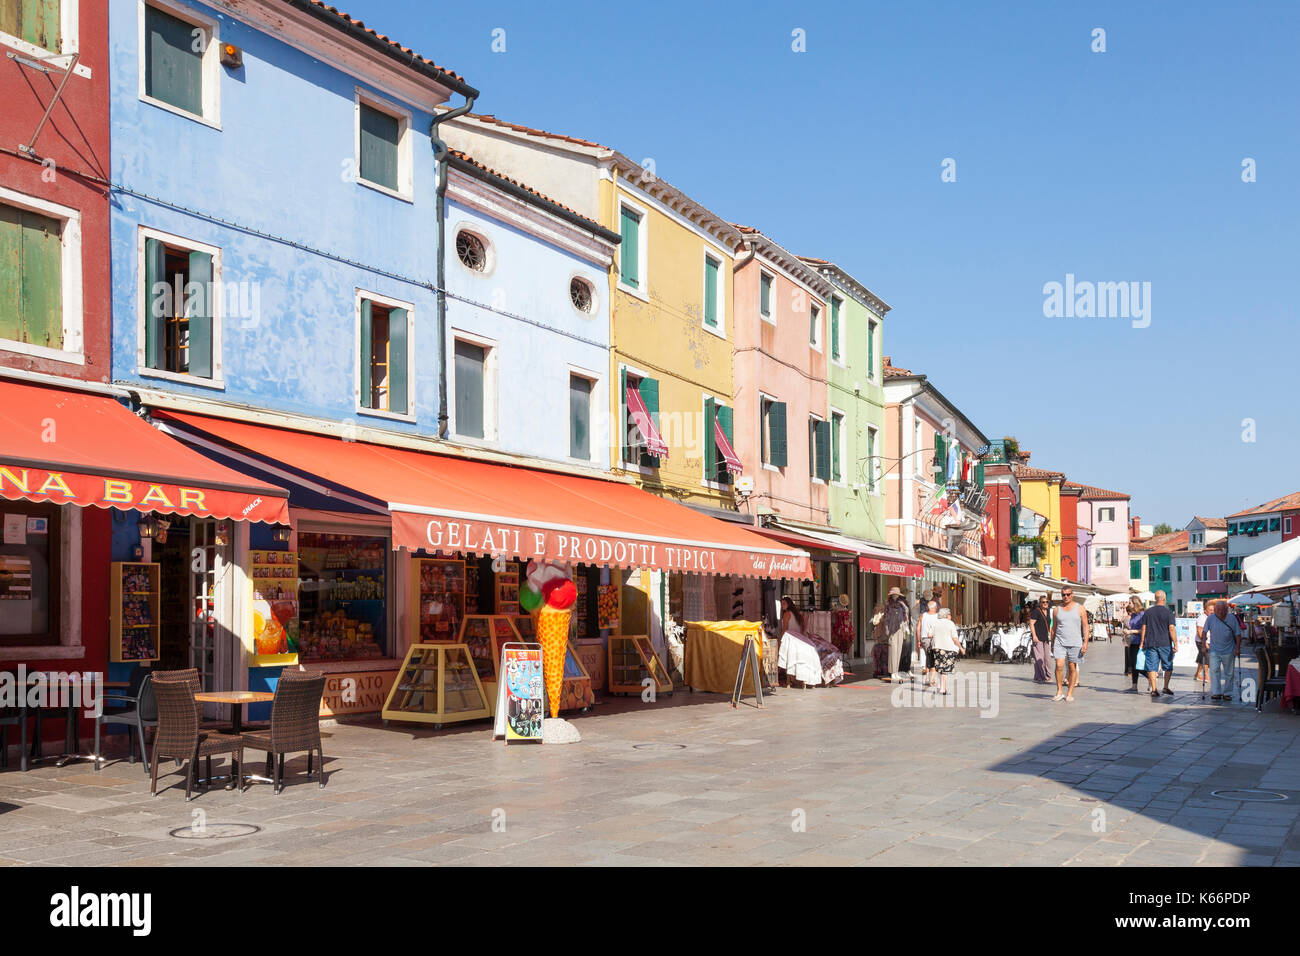 Tourists shopping at colorful stores and restaurants in Via Baldasarre Galuppi, Burano, Venice, Italy, a popular tourist attraction. Burano is known f - Stock Image